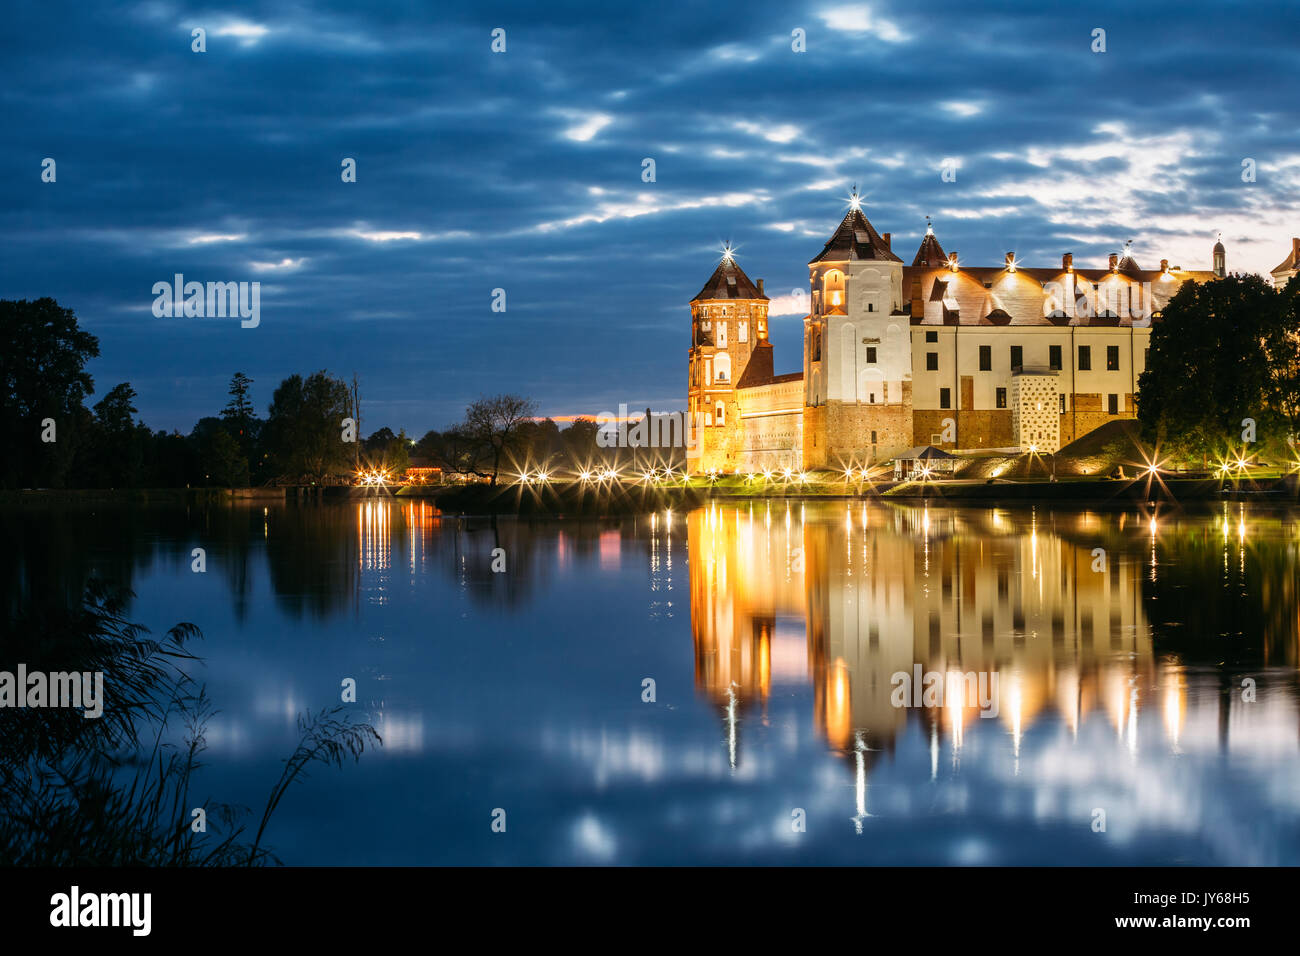 Mir, Belarus. Mir Castle Complex In Bright Evening Illumination With Glow Reflections On Lake Water. Famous Landmark, Ancient Gothic Monument Of Feuda - Stock Image